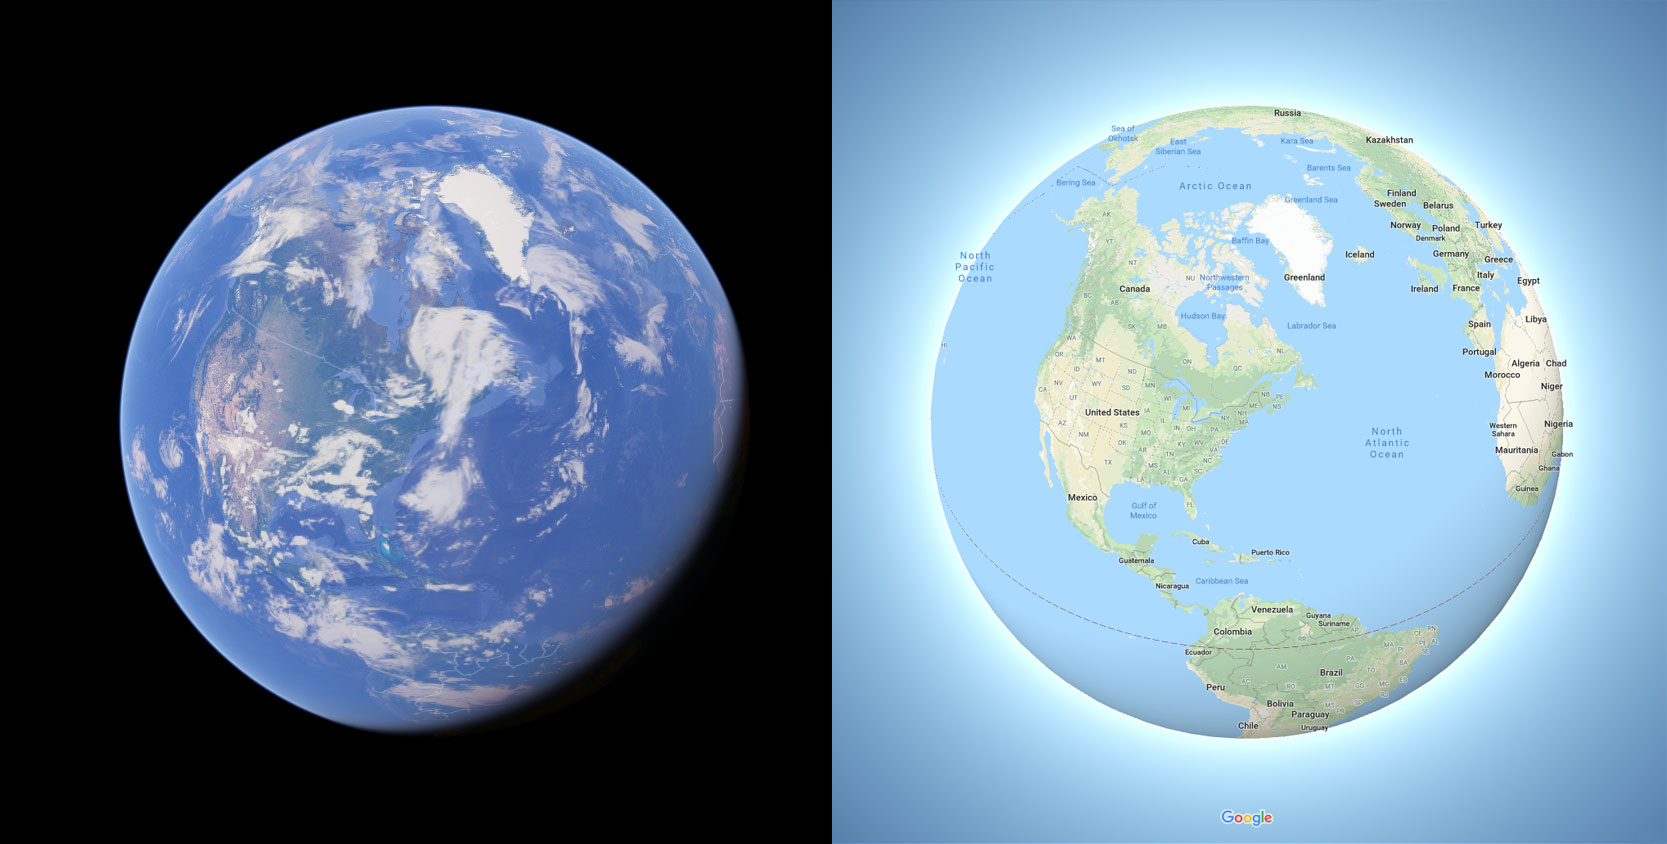 Earth no longer flat in Google Maps   Blog   Spiria on google states, google names of people, google body parts, google things, google sources of revenue, google feelings, google collections, google clip art, google polygons, google scenes, google word art, google monuments, google nature landscapes, google for women, google operators,